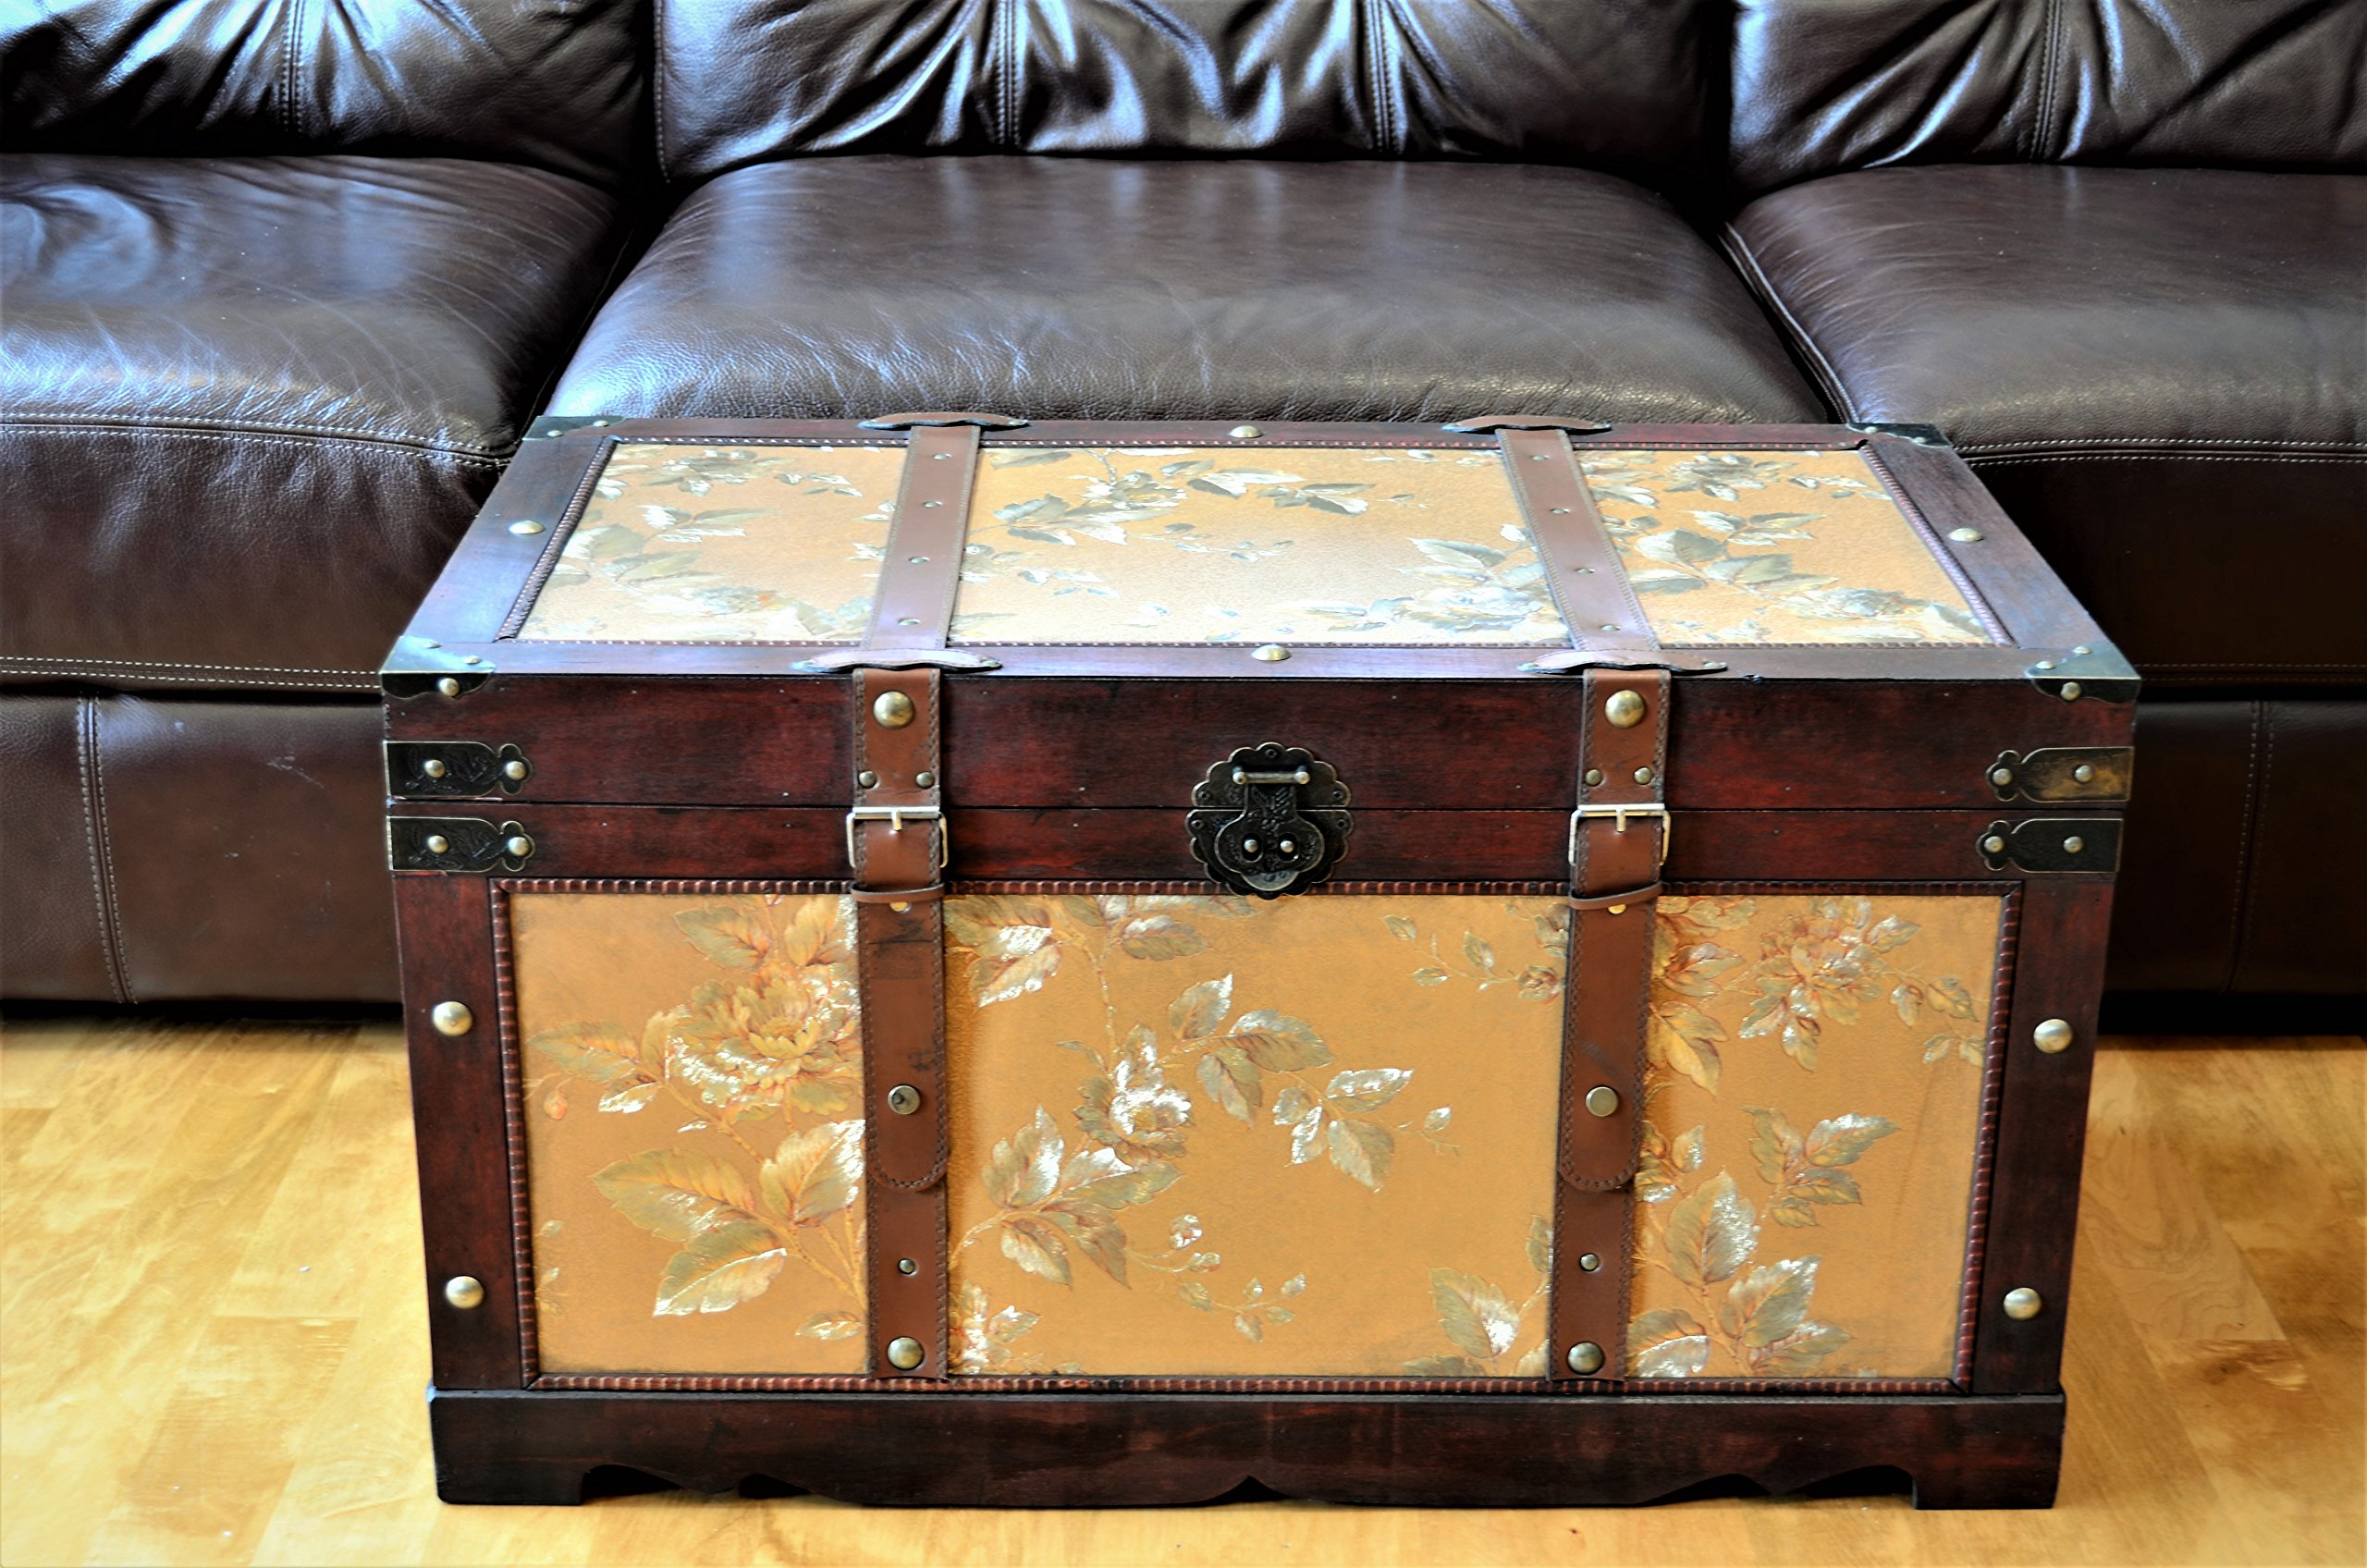 Styled Shopping Gold Leaves Medium Wood Storage Trunk Wooden Treasure Chest by Styled Shopping